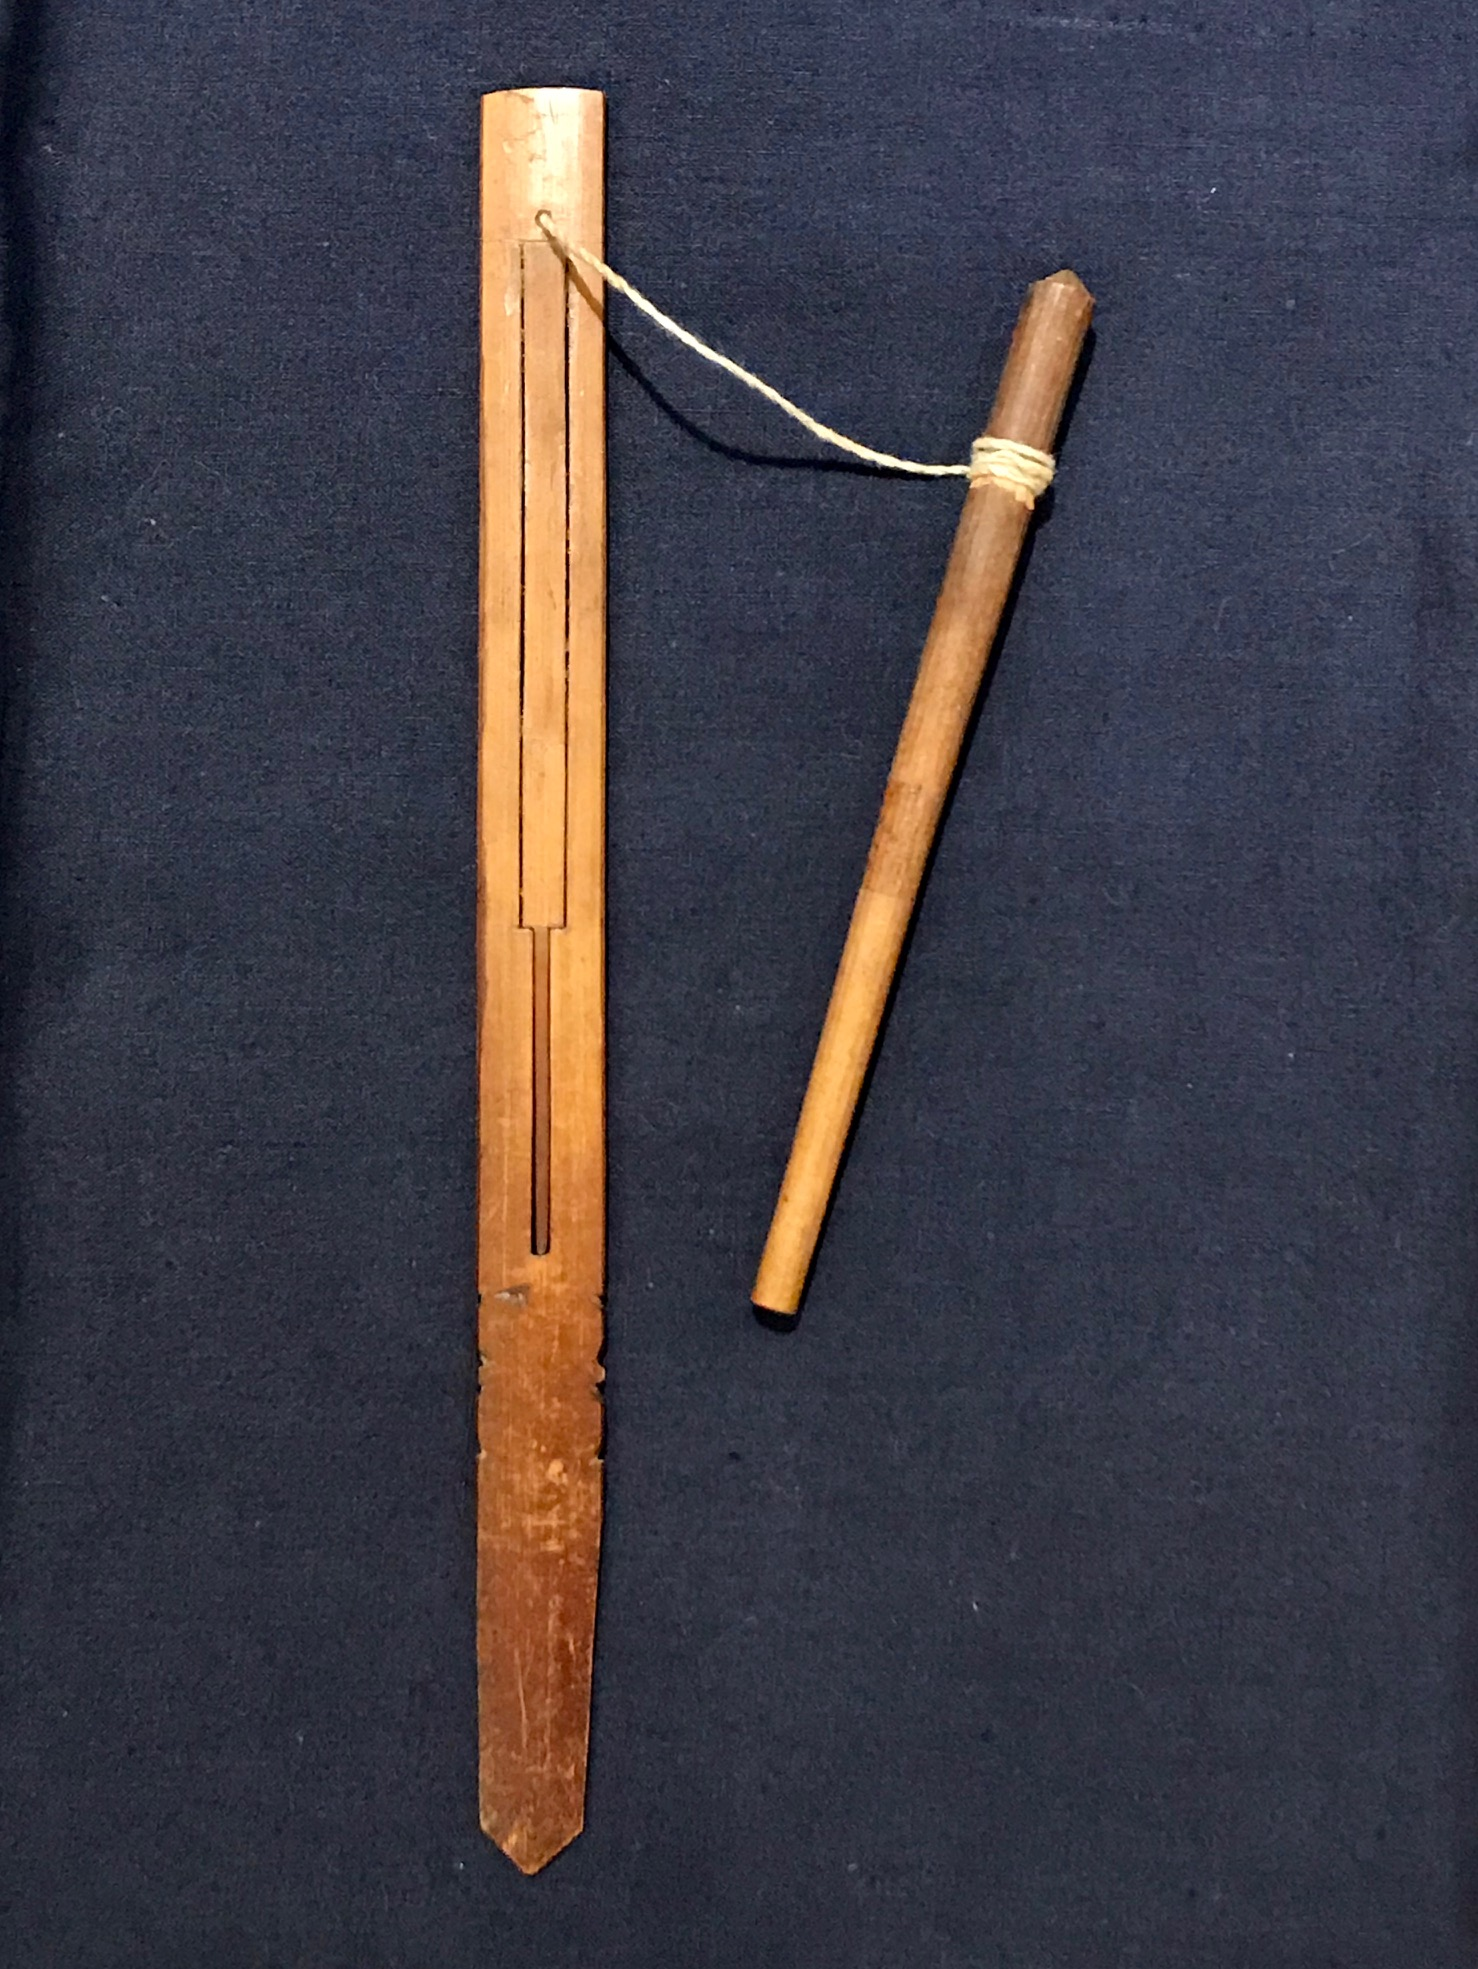 "Tribal Musical Instrument, Mouth Harp with pull stick, Sasak tribe, Lombok Island, Indonesia, Early to mid 20th c, bamboo, string, played by using the mouth as the resonating cavity and pulling the string to vibrate the bamboo. There are many traditional songs written for it. It has been referred to as a 'mind cleaner' Because it uses the mouth to resonate, it clears the brain of unclear thoughts. 7 3/4"" x 5/8"" x 1/8"", pull stick - 4 3/4"" x 1/4, sold, thedavidalancollection.com , solana beach, ca"